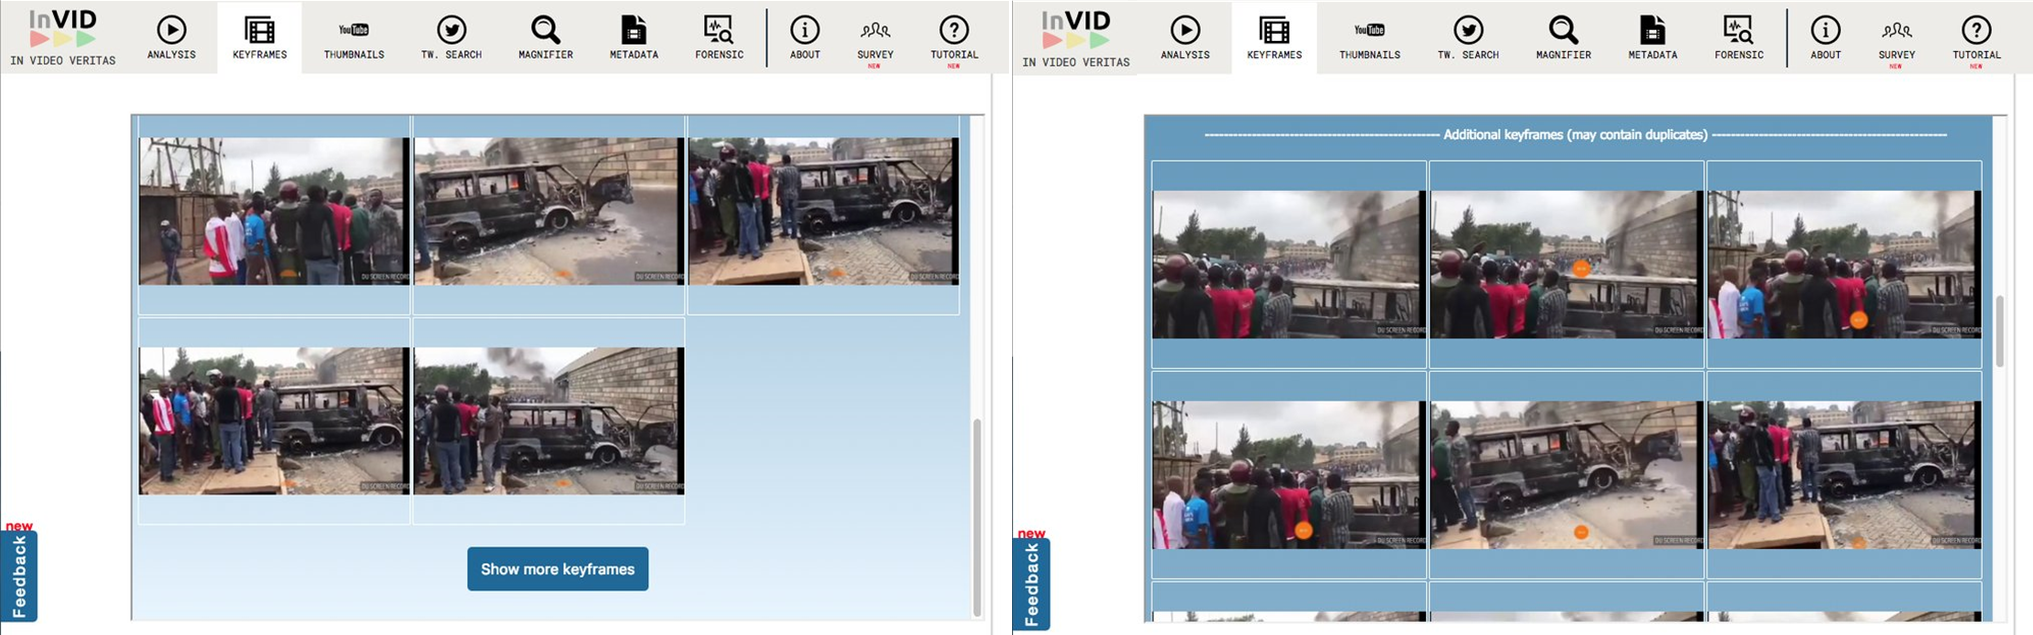 The video keyframe extraction tool offers additional keyframes for reverse image search (right image) after a user request via a simple button at the end of the initial collection of keyframes (left image)